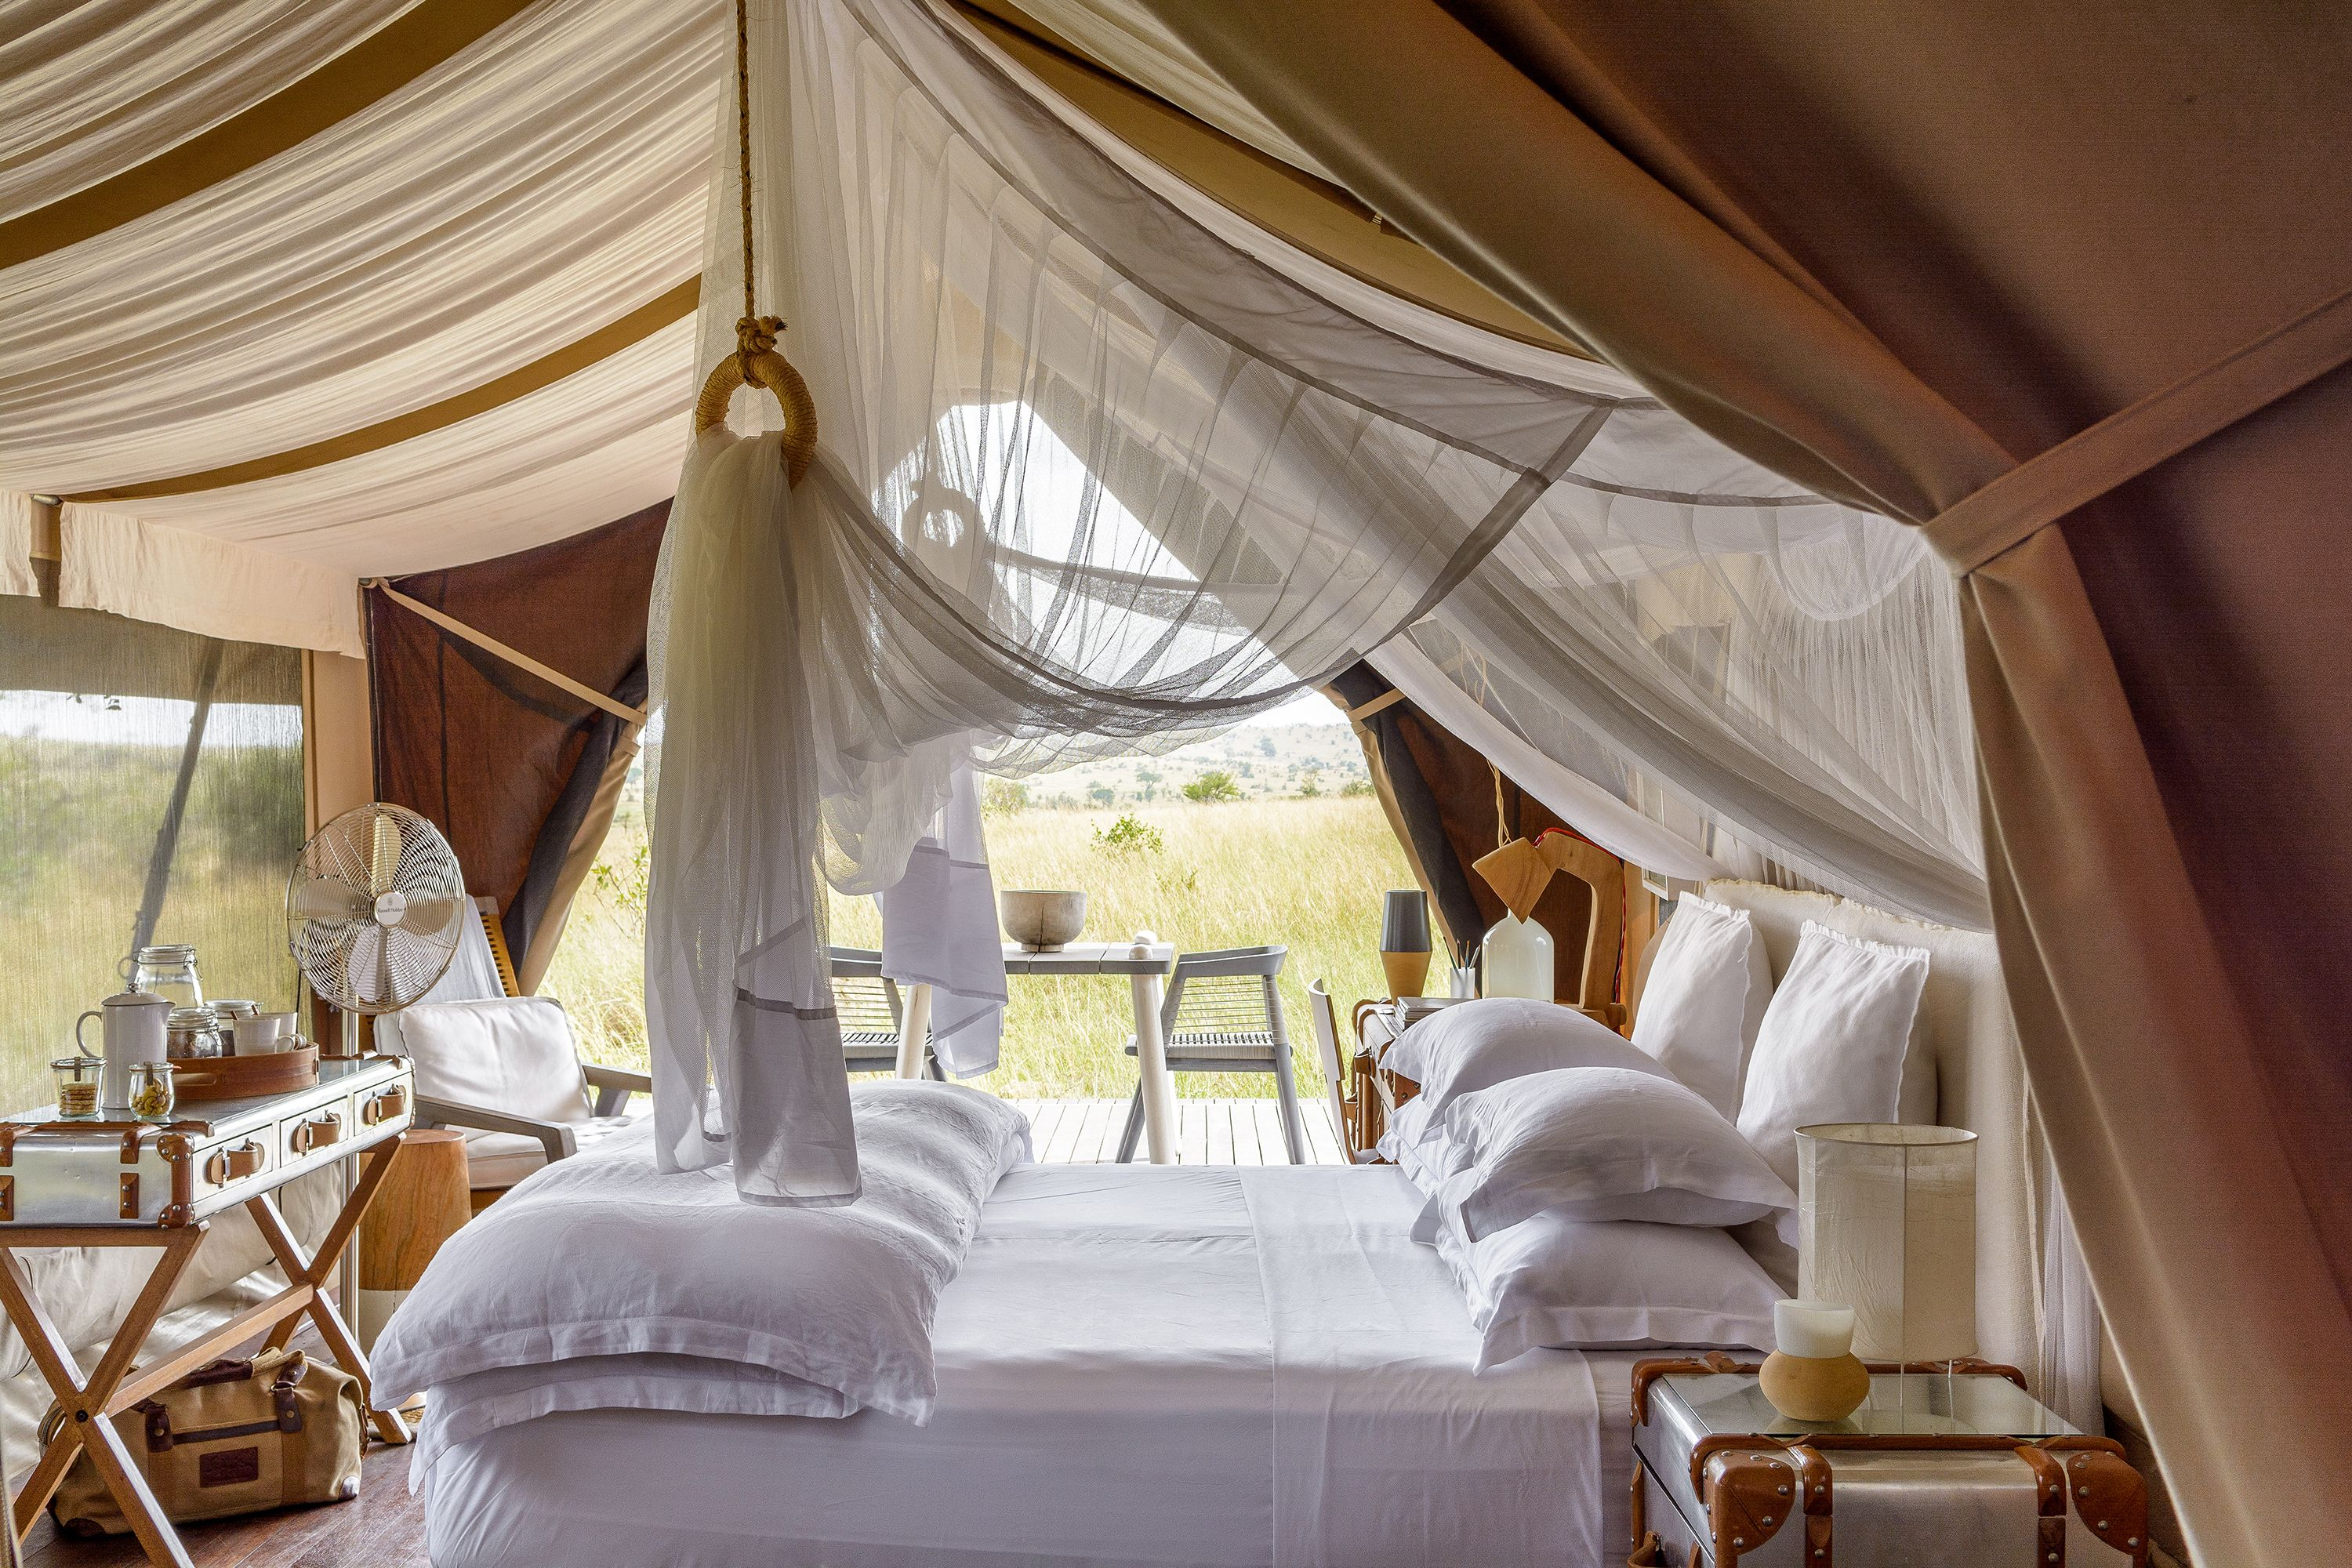 Best Luxury Glamping Sites In The World | Camping | Luxury